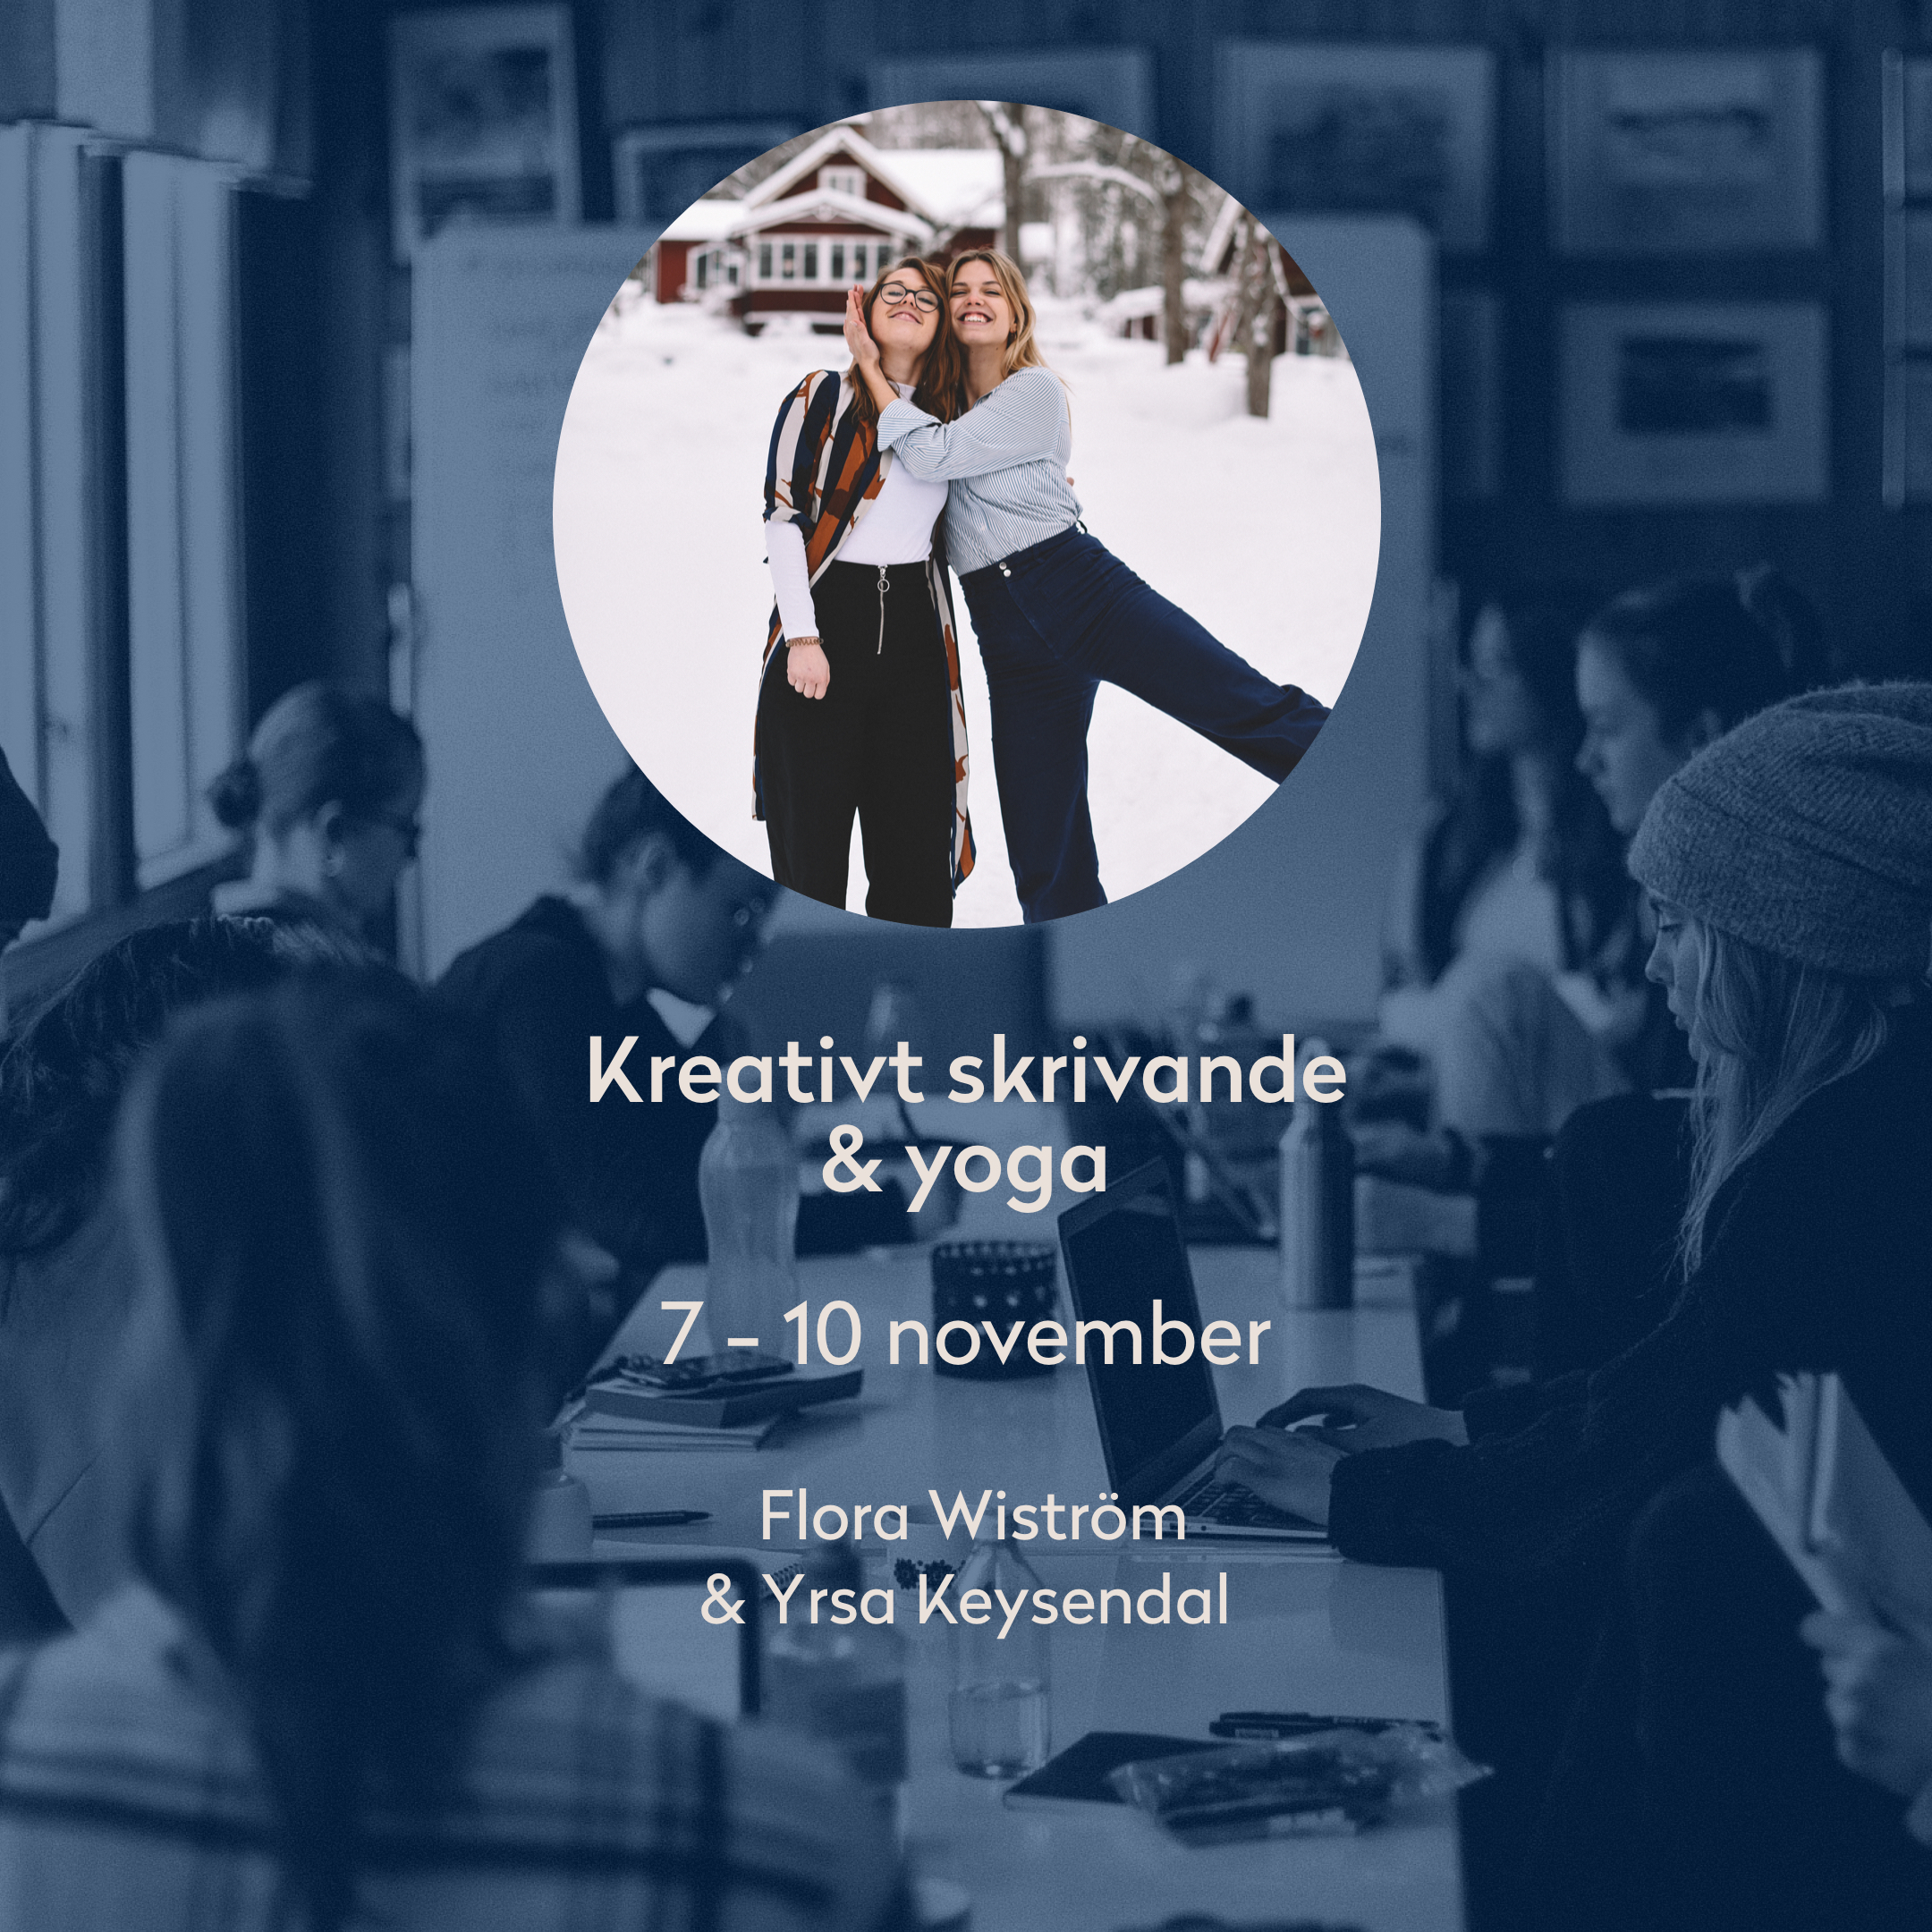 Creative writing & yoga - Nov - Are you curious about exploring your writing? For the 6th time, we invite our 2 friends (and authors) Yrsa Keysendal and Flora Wiström, to co-host a creative retreat where we mix creative writing with yoga and meditation.Find more info here (in Swedish)